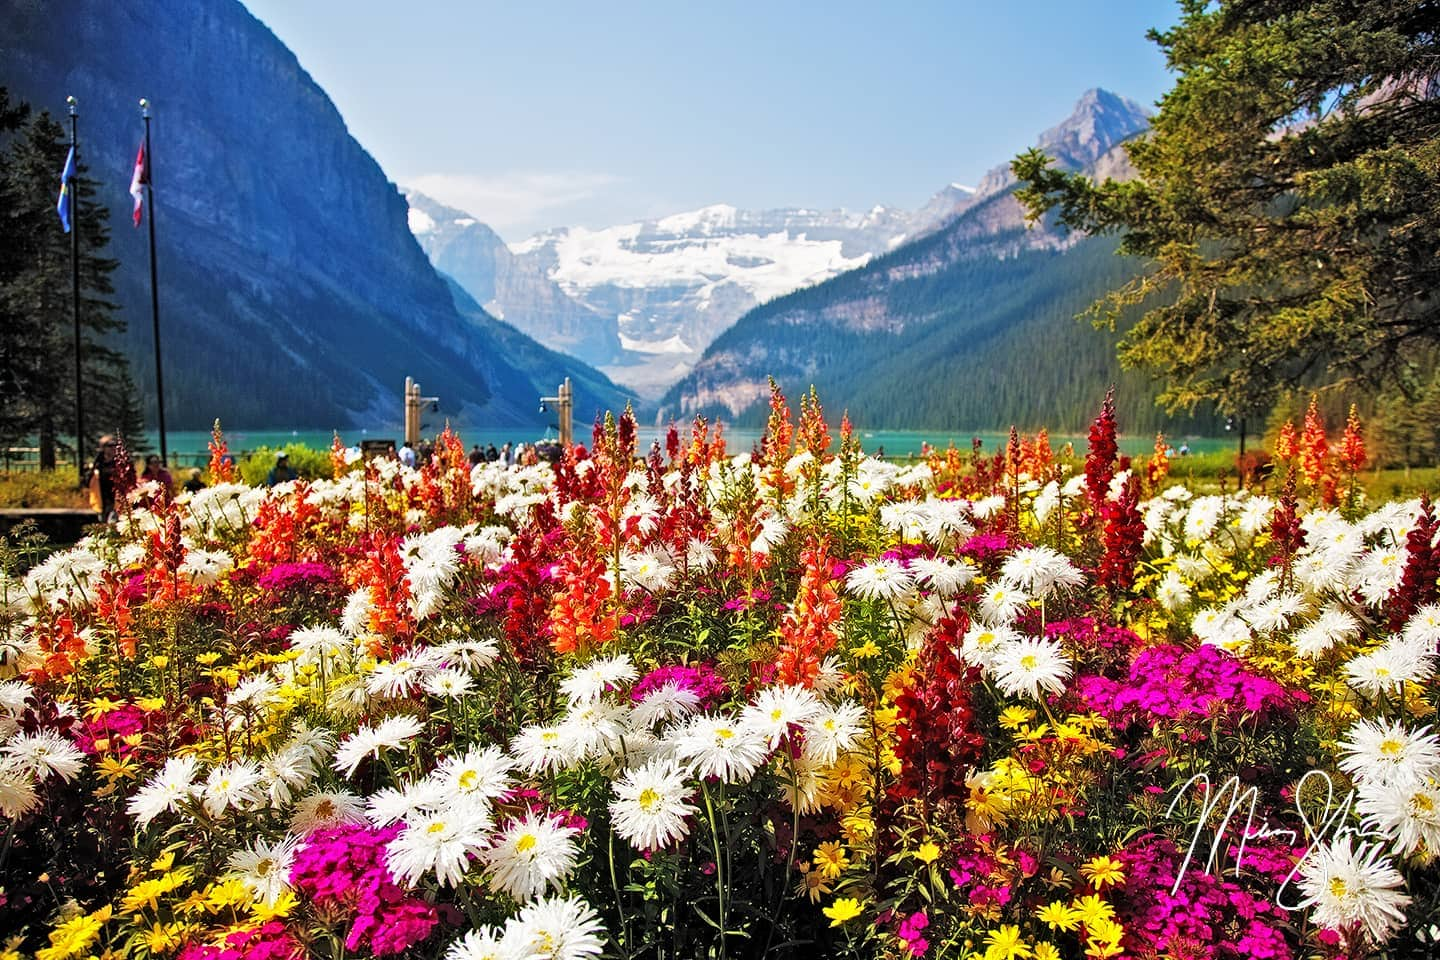 Open edition fine art print of Garden Flowers Of Lake Louise from Mickey Shannon Photography. Location: The Fairmont Chateau, Lake Louise, Banff National Park, Alberta, Canada